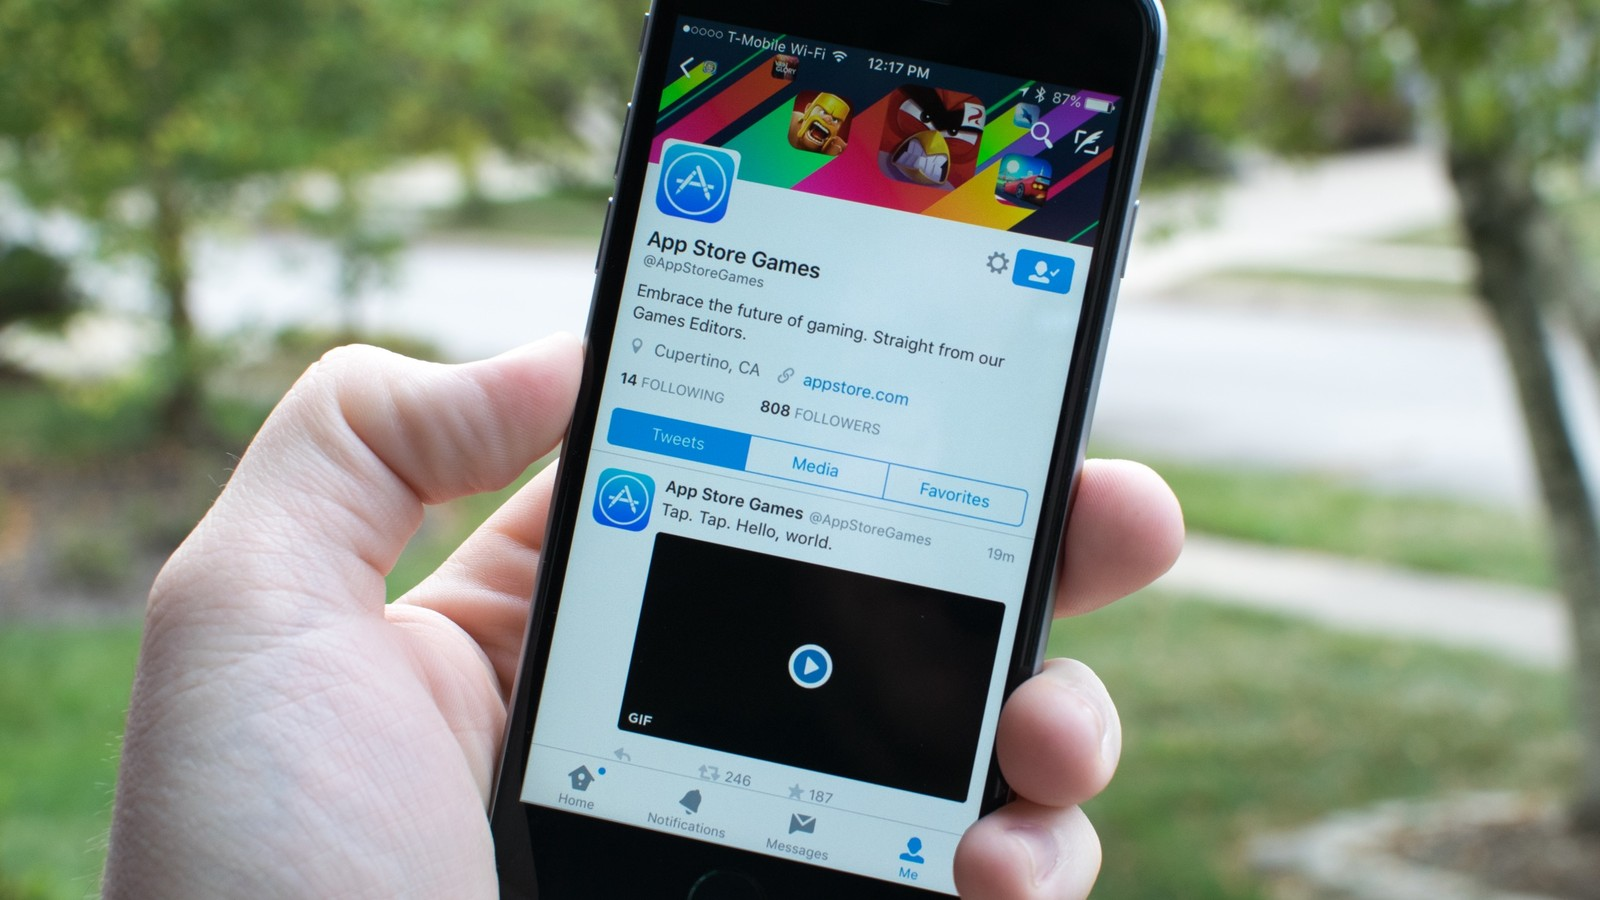 App Store gaming gets an official Twitter account